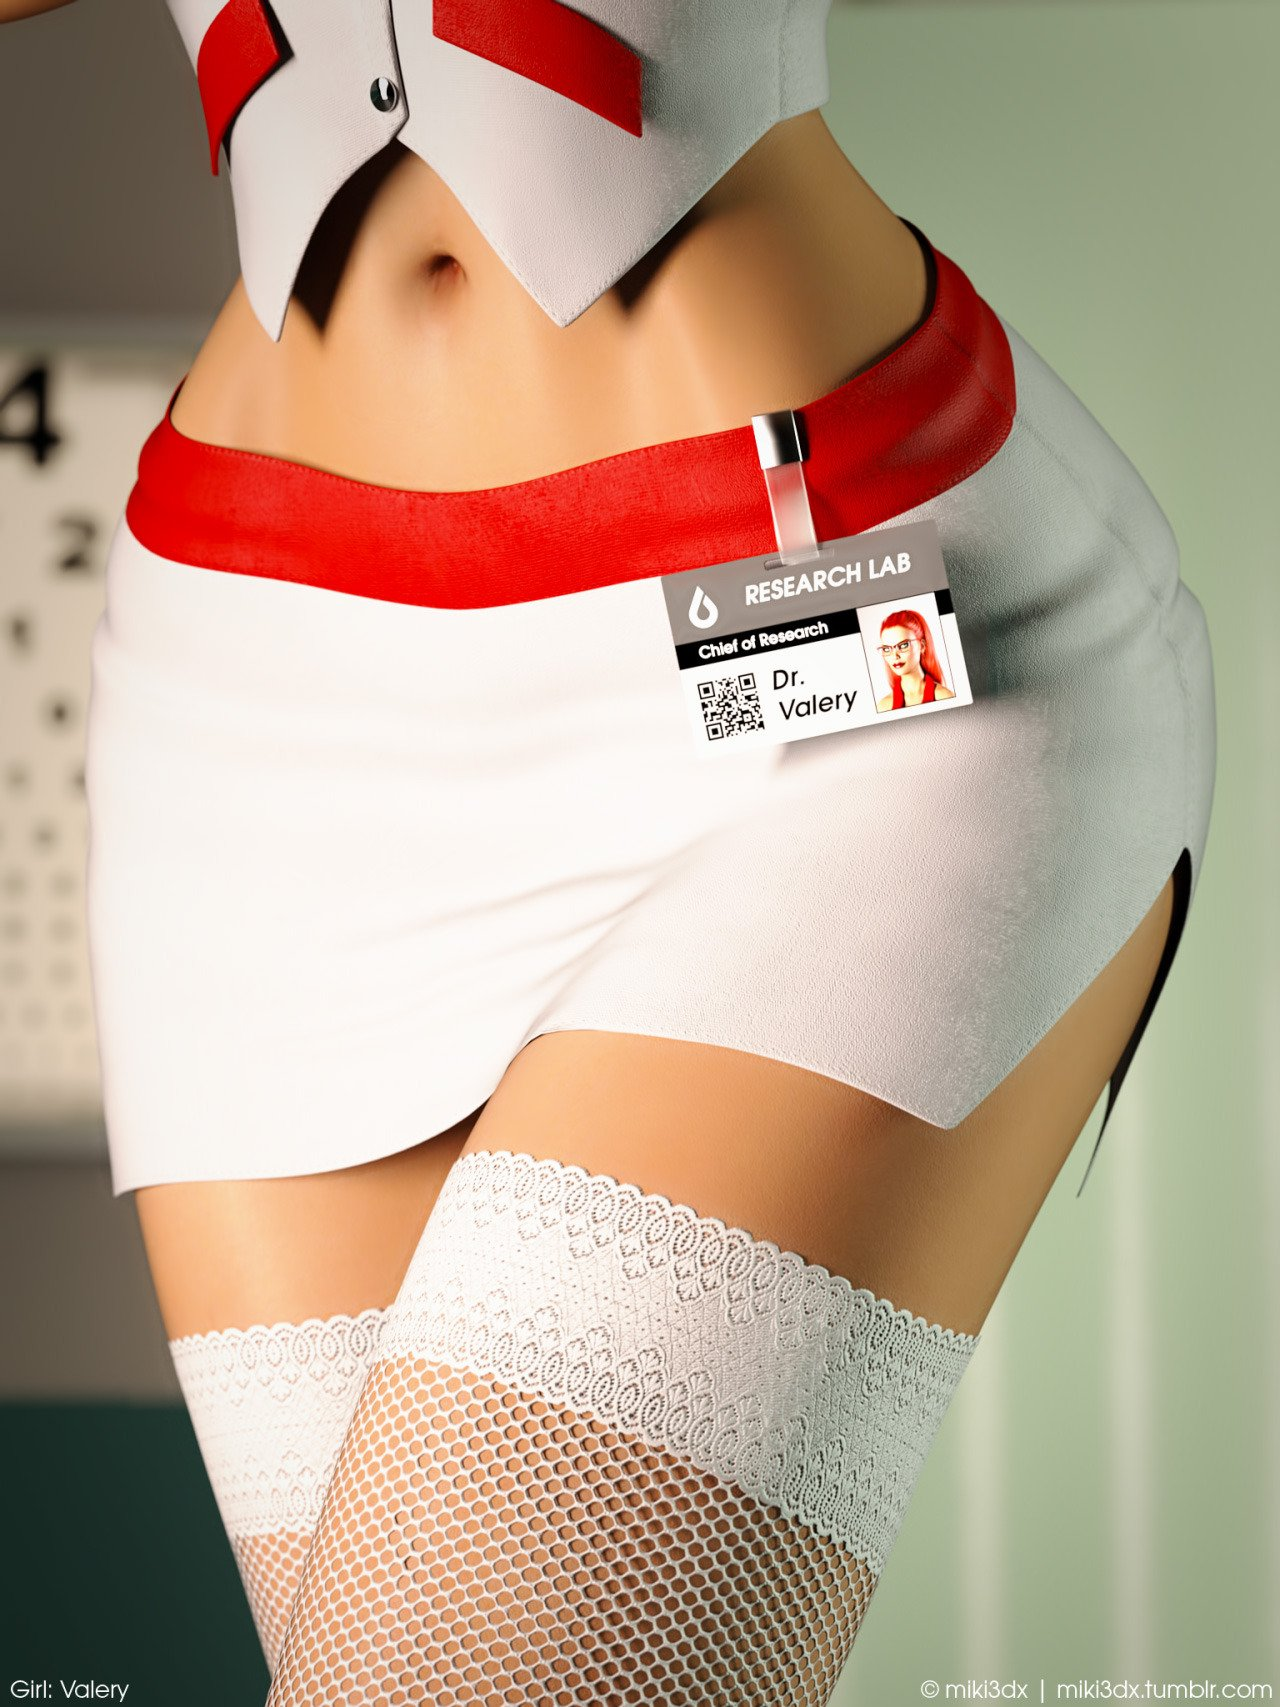 My Favorite Uniform in 3DX: Naughty Nurse